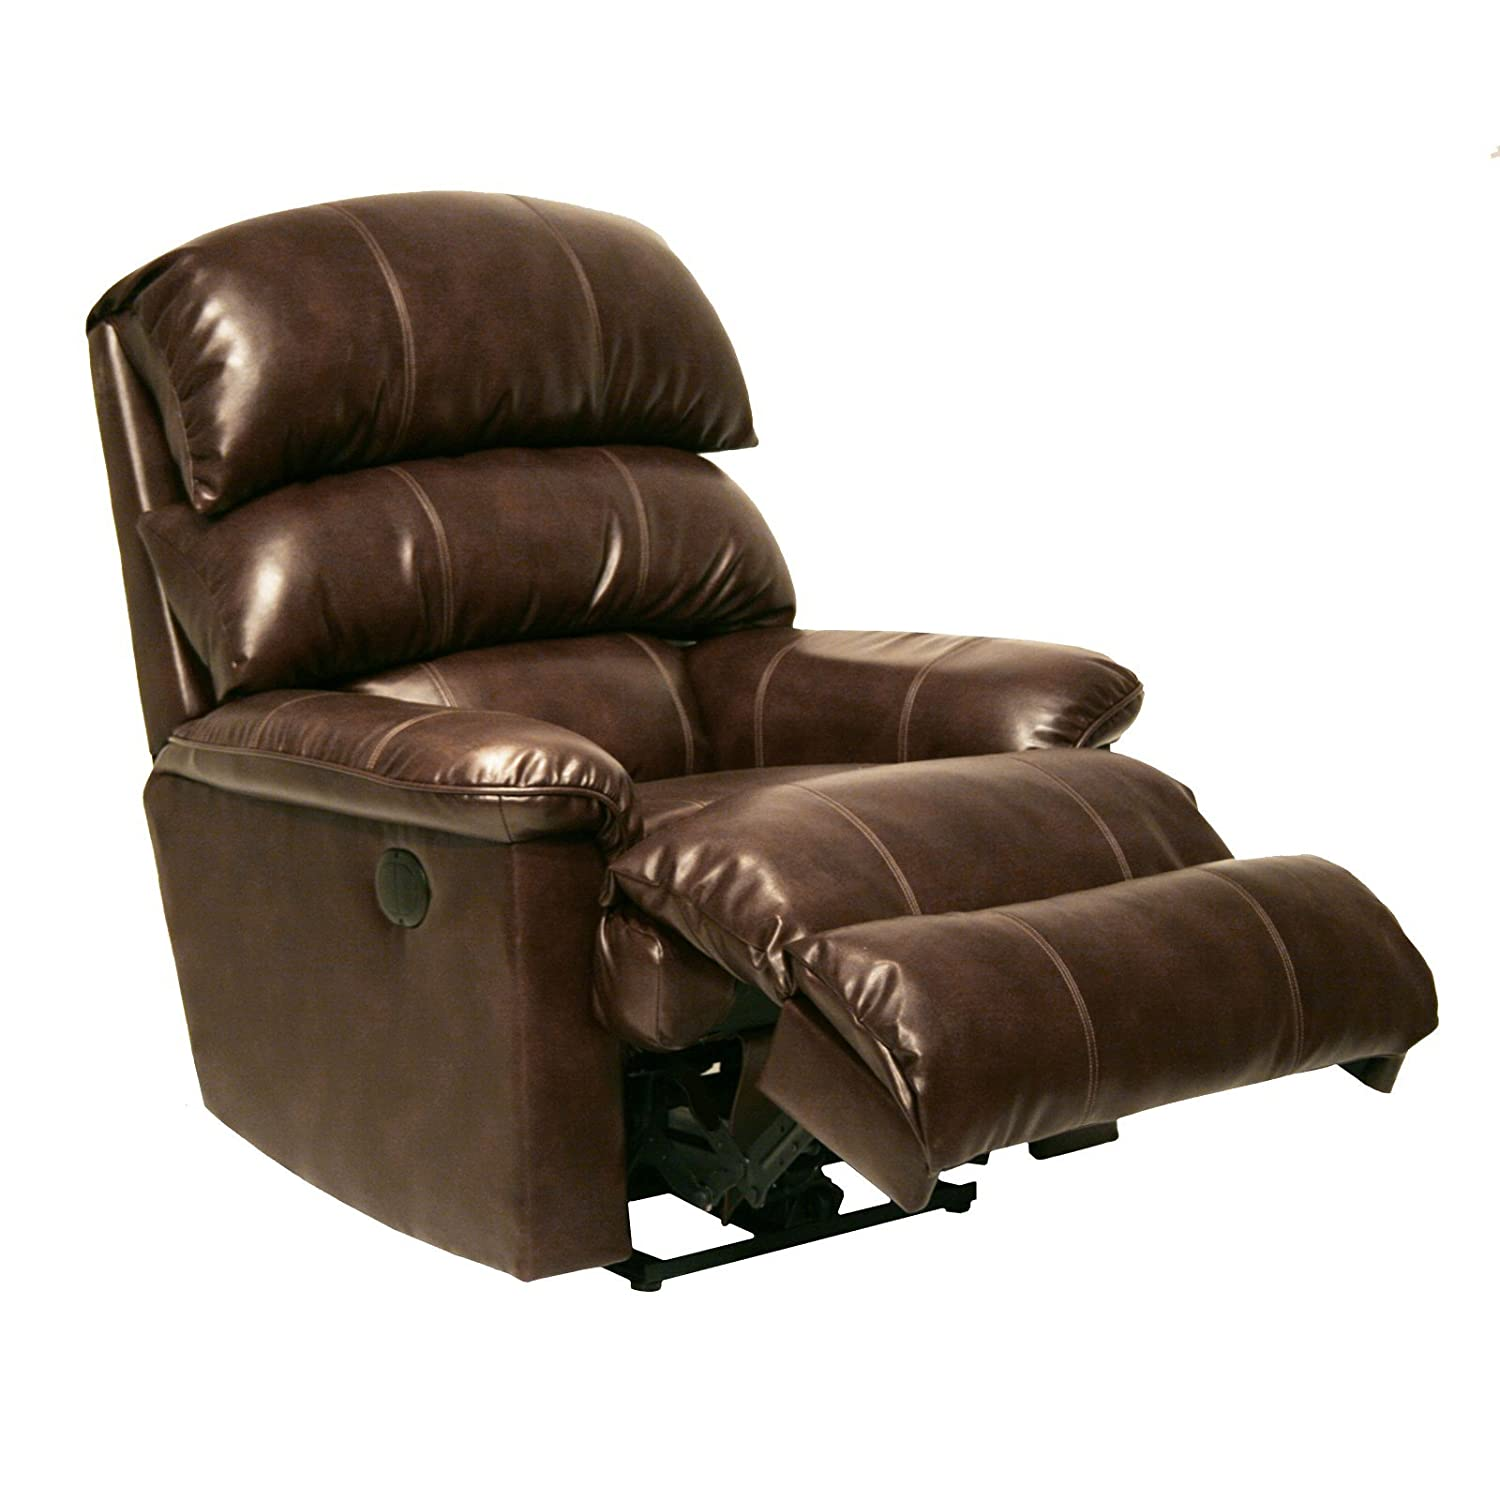 Amazon.com Catnapper Templeton Leather Power Wall Hugger Recliner Kitchen u0026 Dining  sc 1 st  Amazon.com & Amazon.com: Catnapper Templeton Leather Power Wall Hugger Recliner ... islam-shia.org